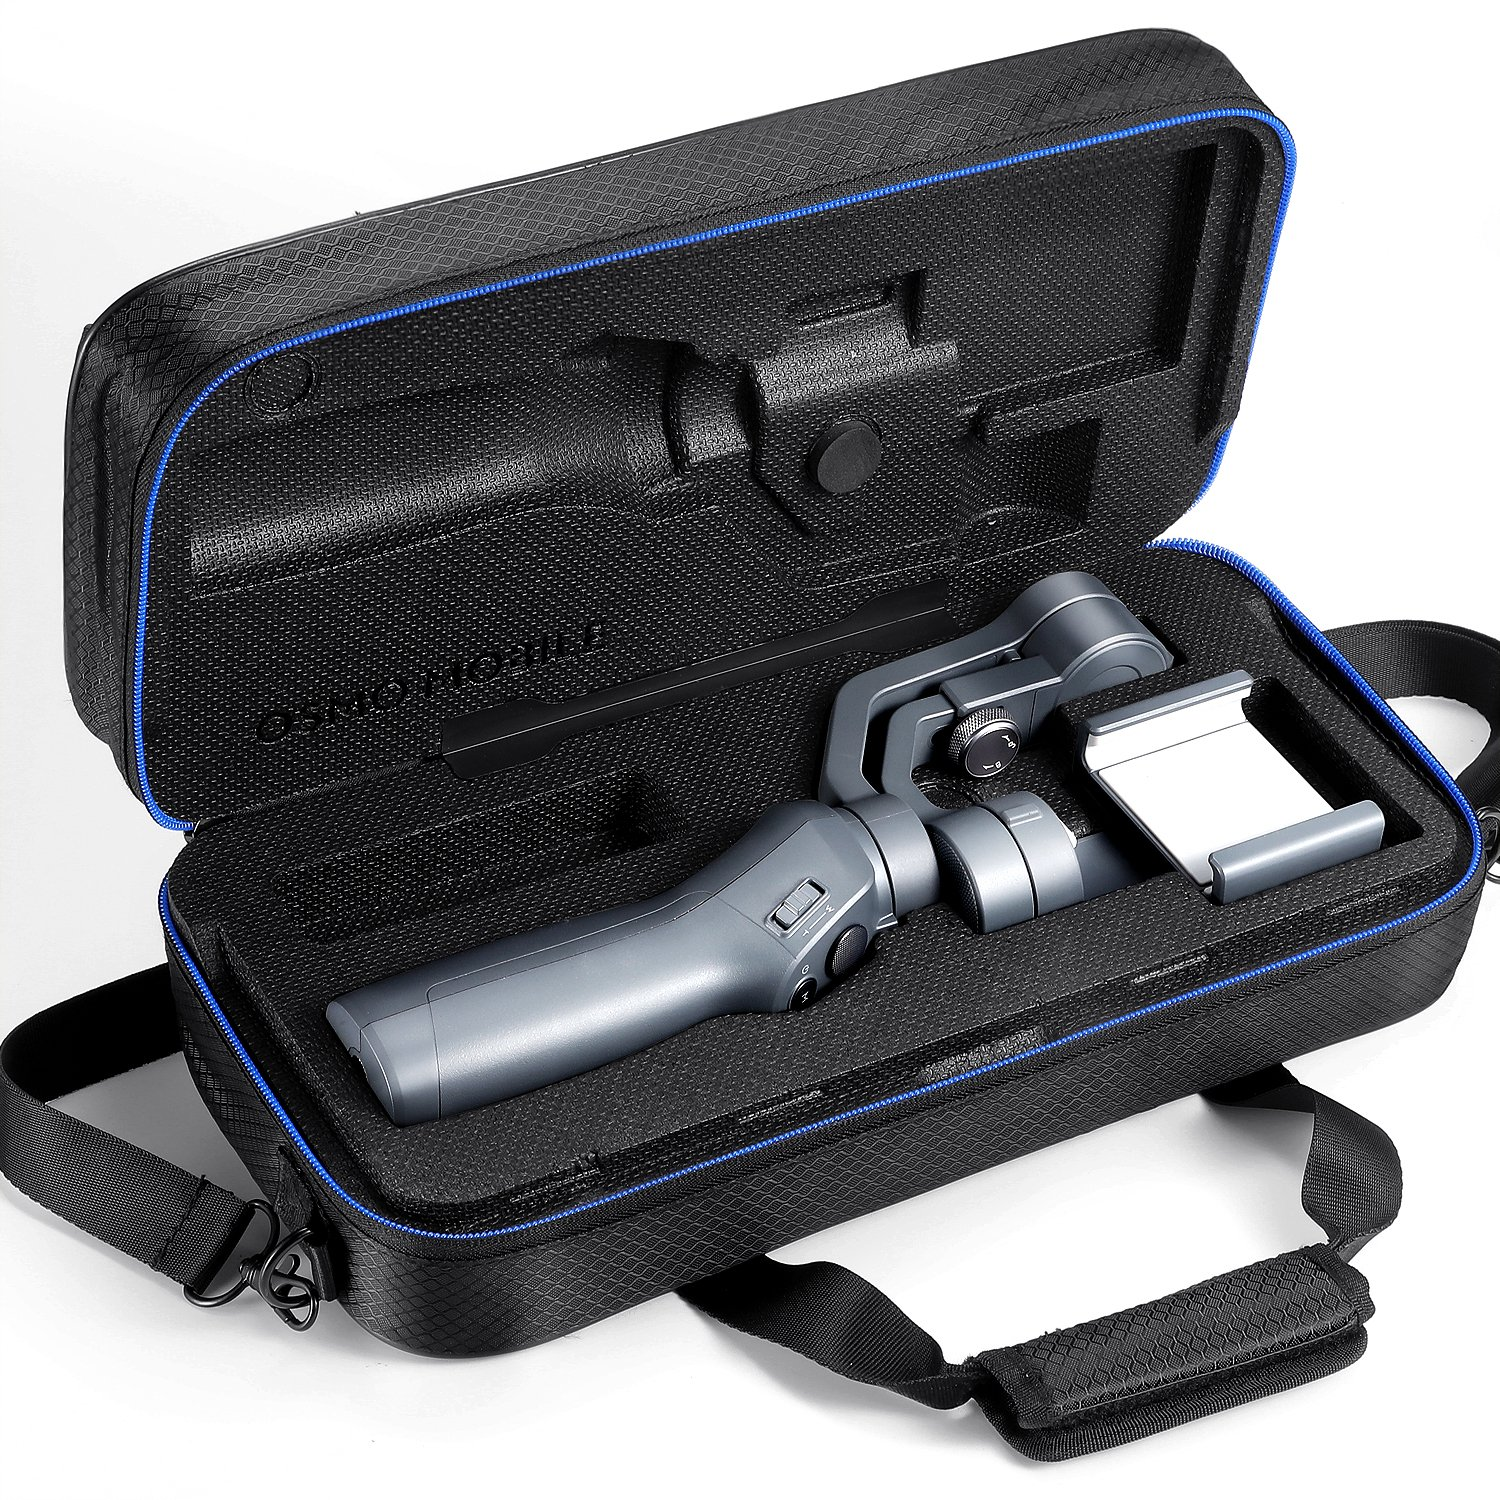 DJI Osmo Mobile 2 Carrying Case by DACCKIT - fit for DJI osmo mobile 2 Handheld Smartphone Gimbal with tripod combo, Extension Stick, Base